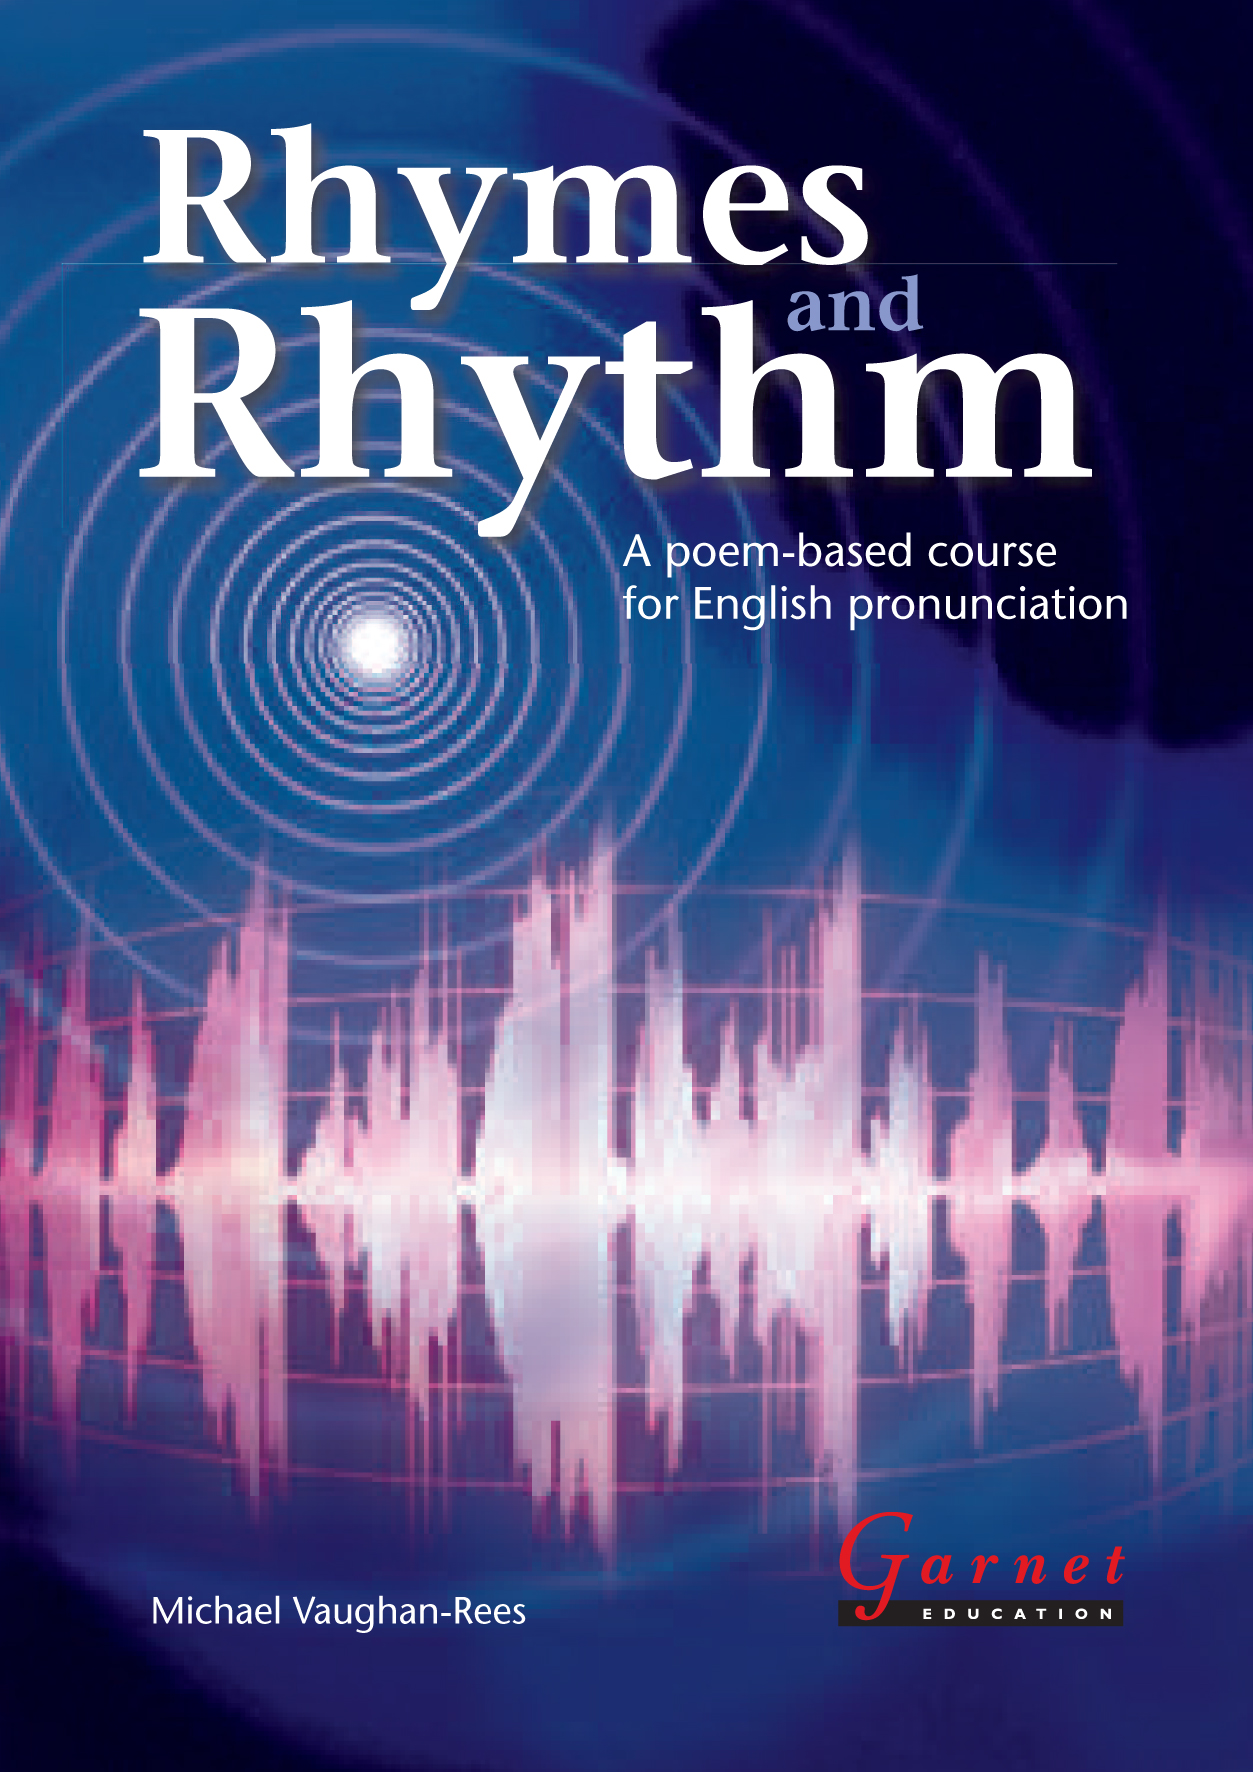 Rhymes and Rhythm